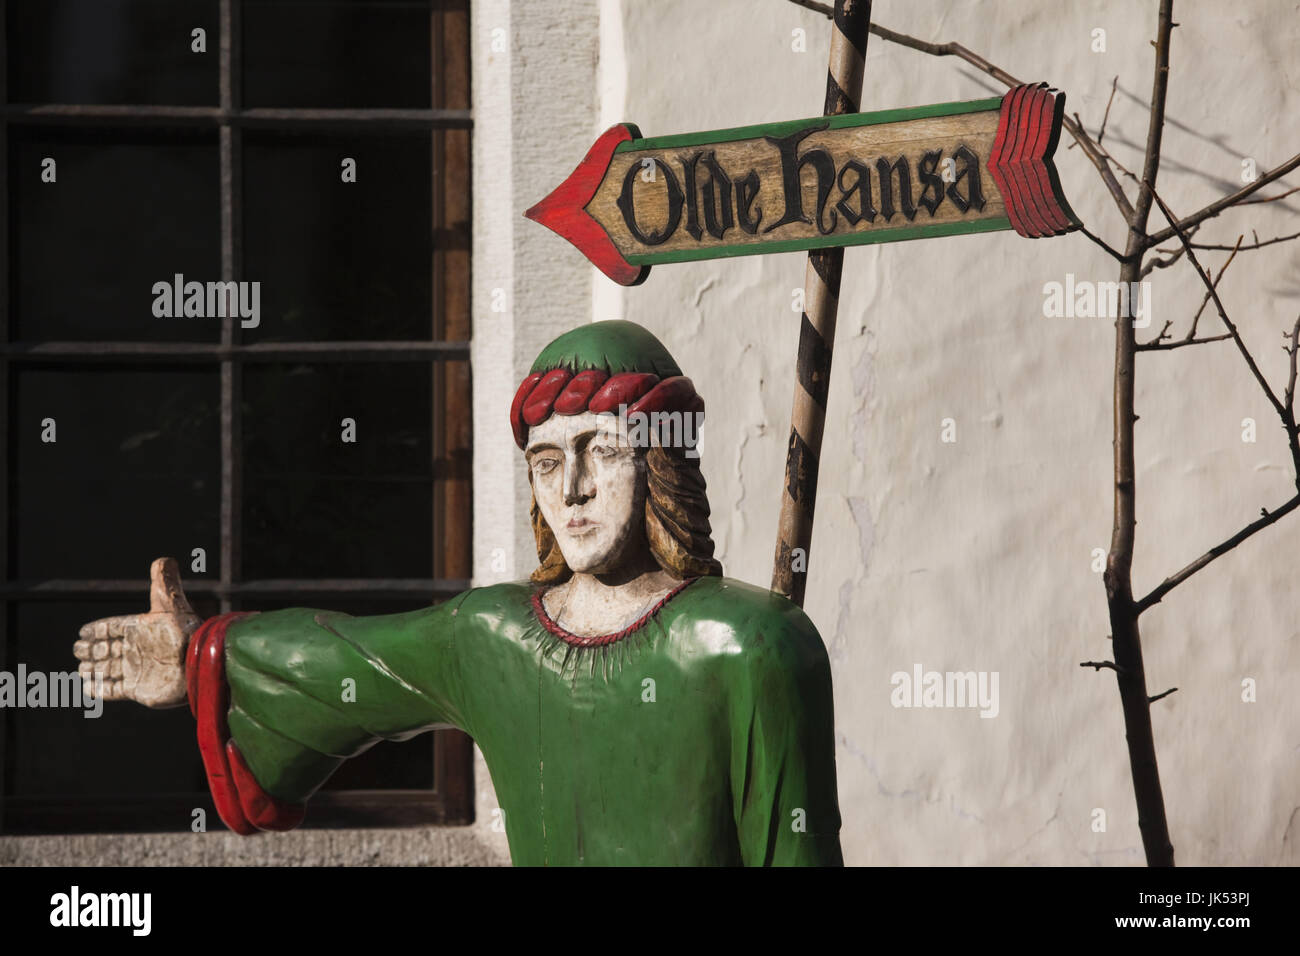 Estonia, Tallinn, Old Town, sign and statue to the Old Hansa restaurant - Stock Image